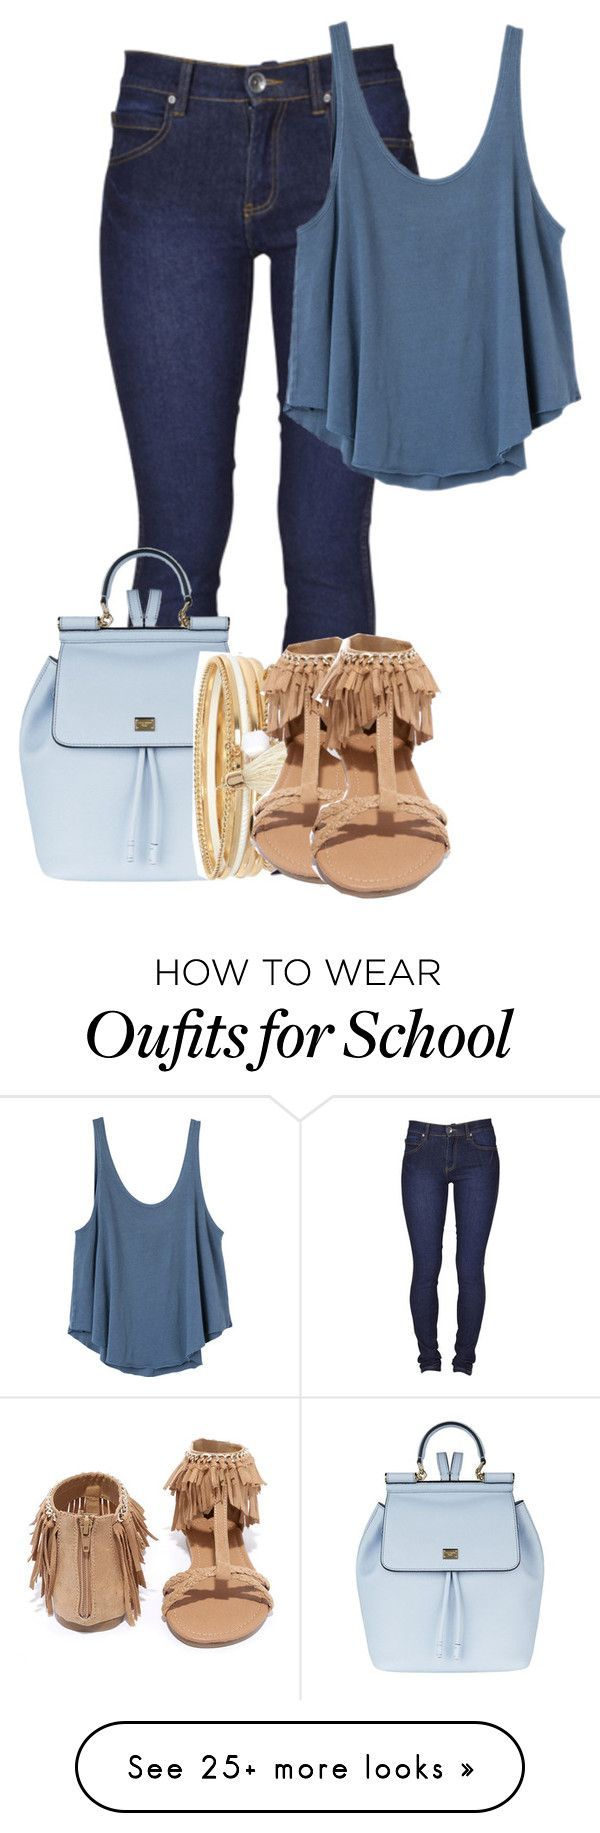 Back to school style!